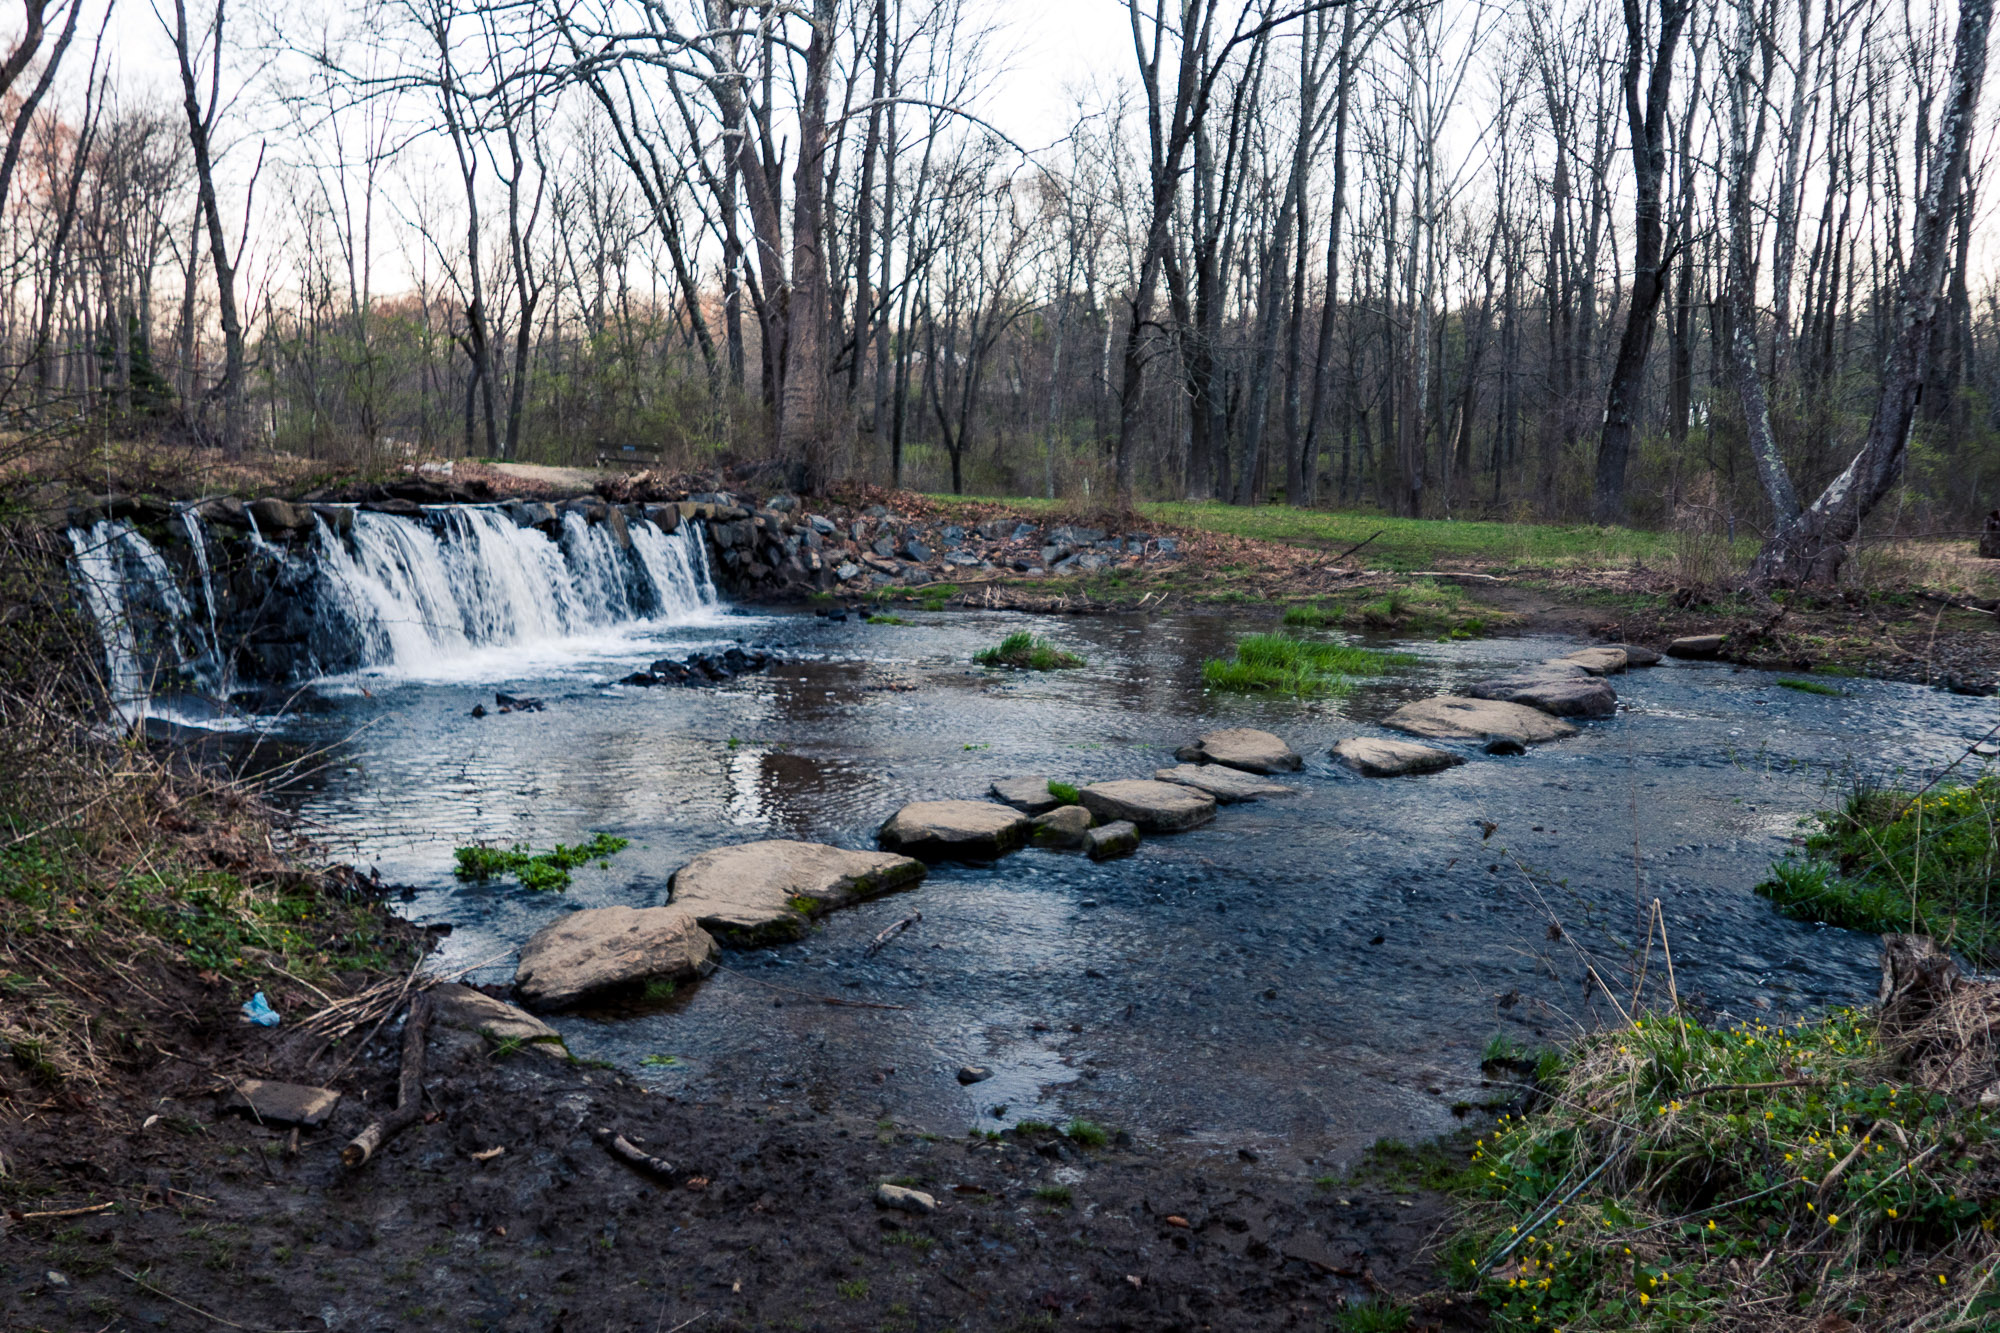 Stepping Stones \ \ 4/5/17